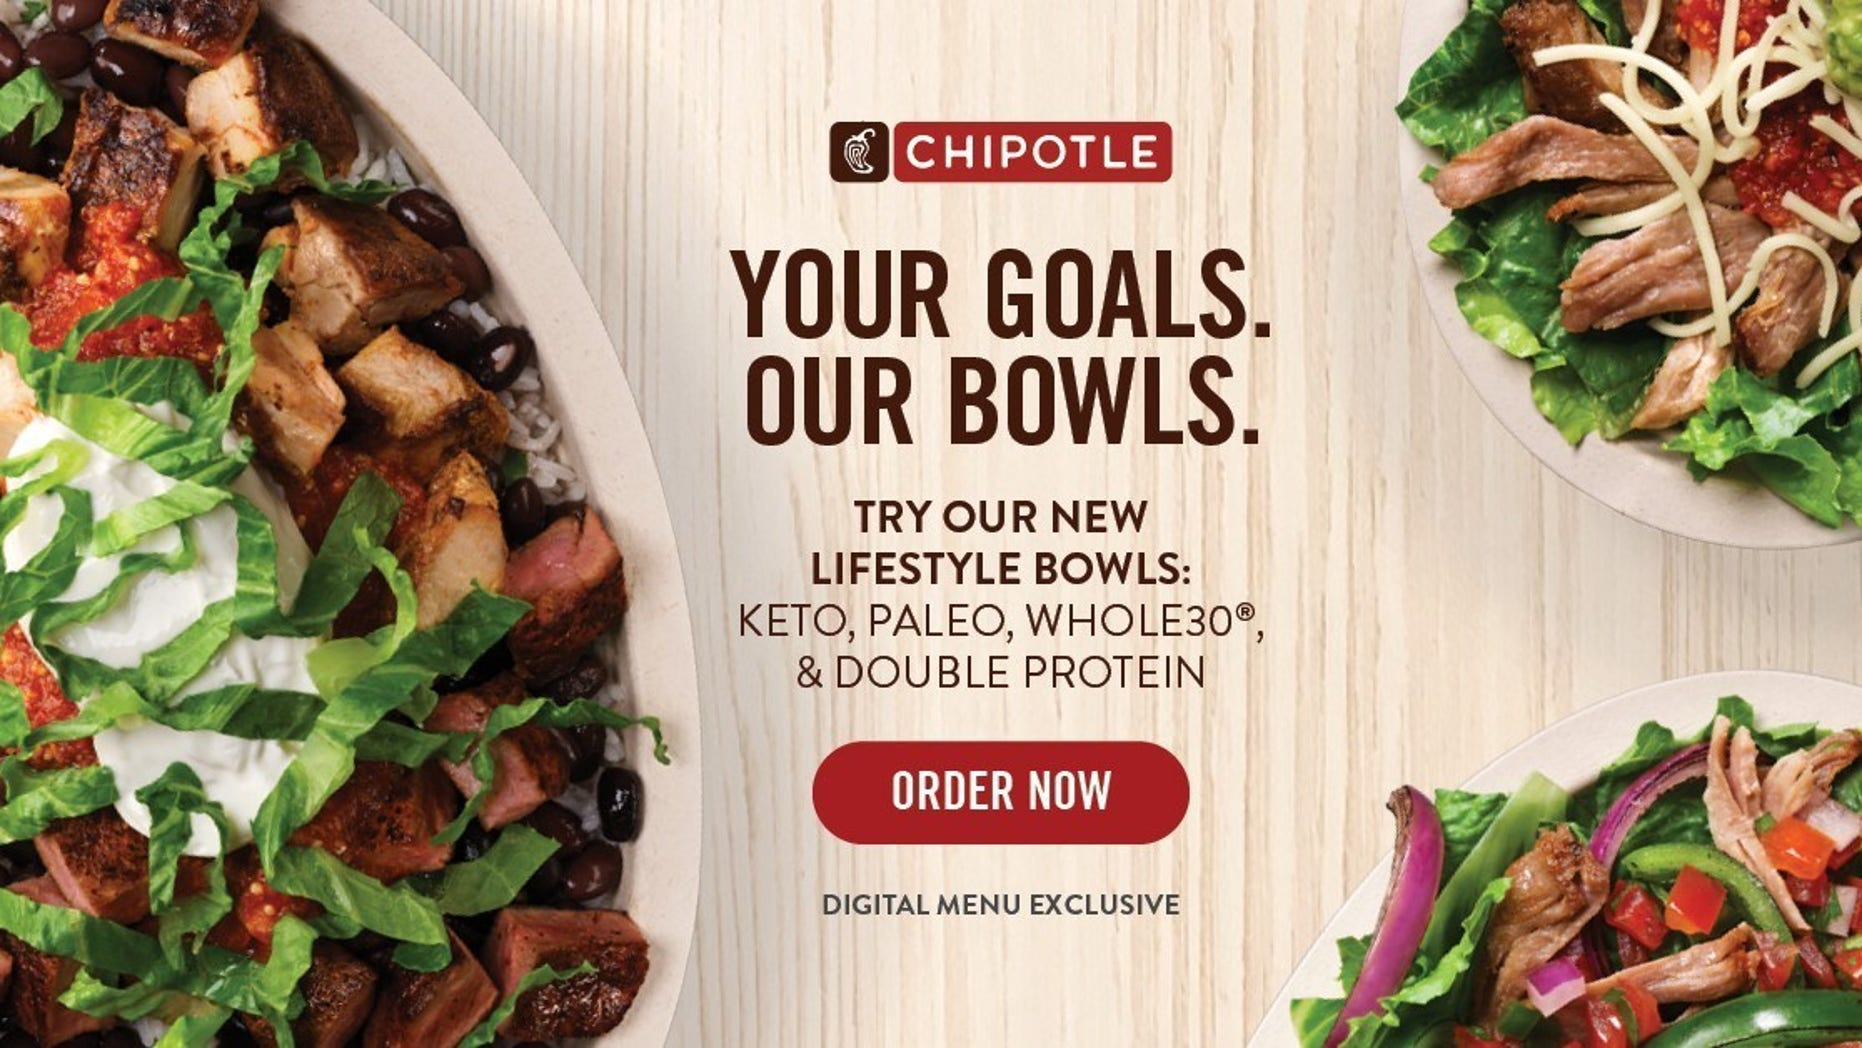 Chipotle Introduces New 'Lifestyle Bowls' for Various Diets